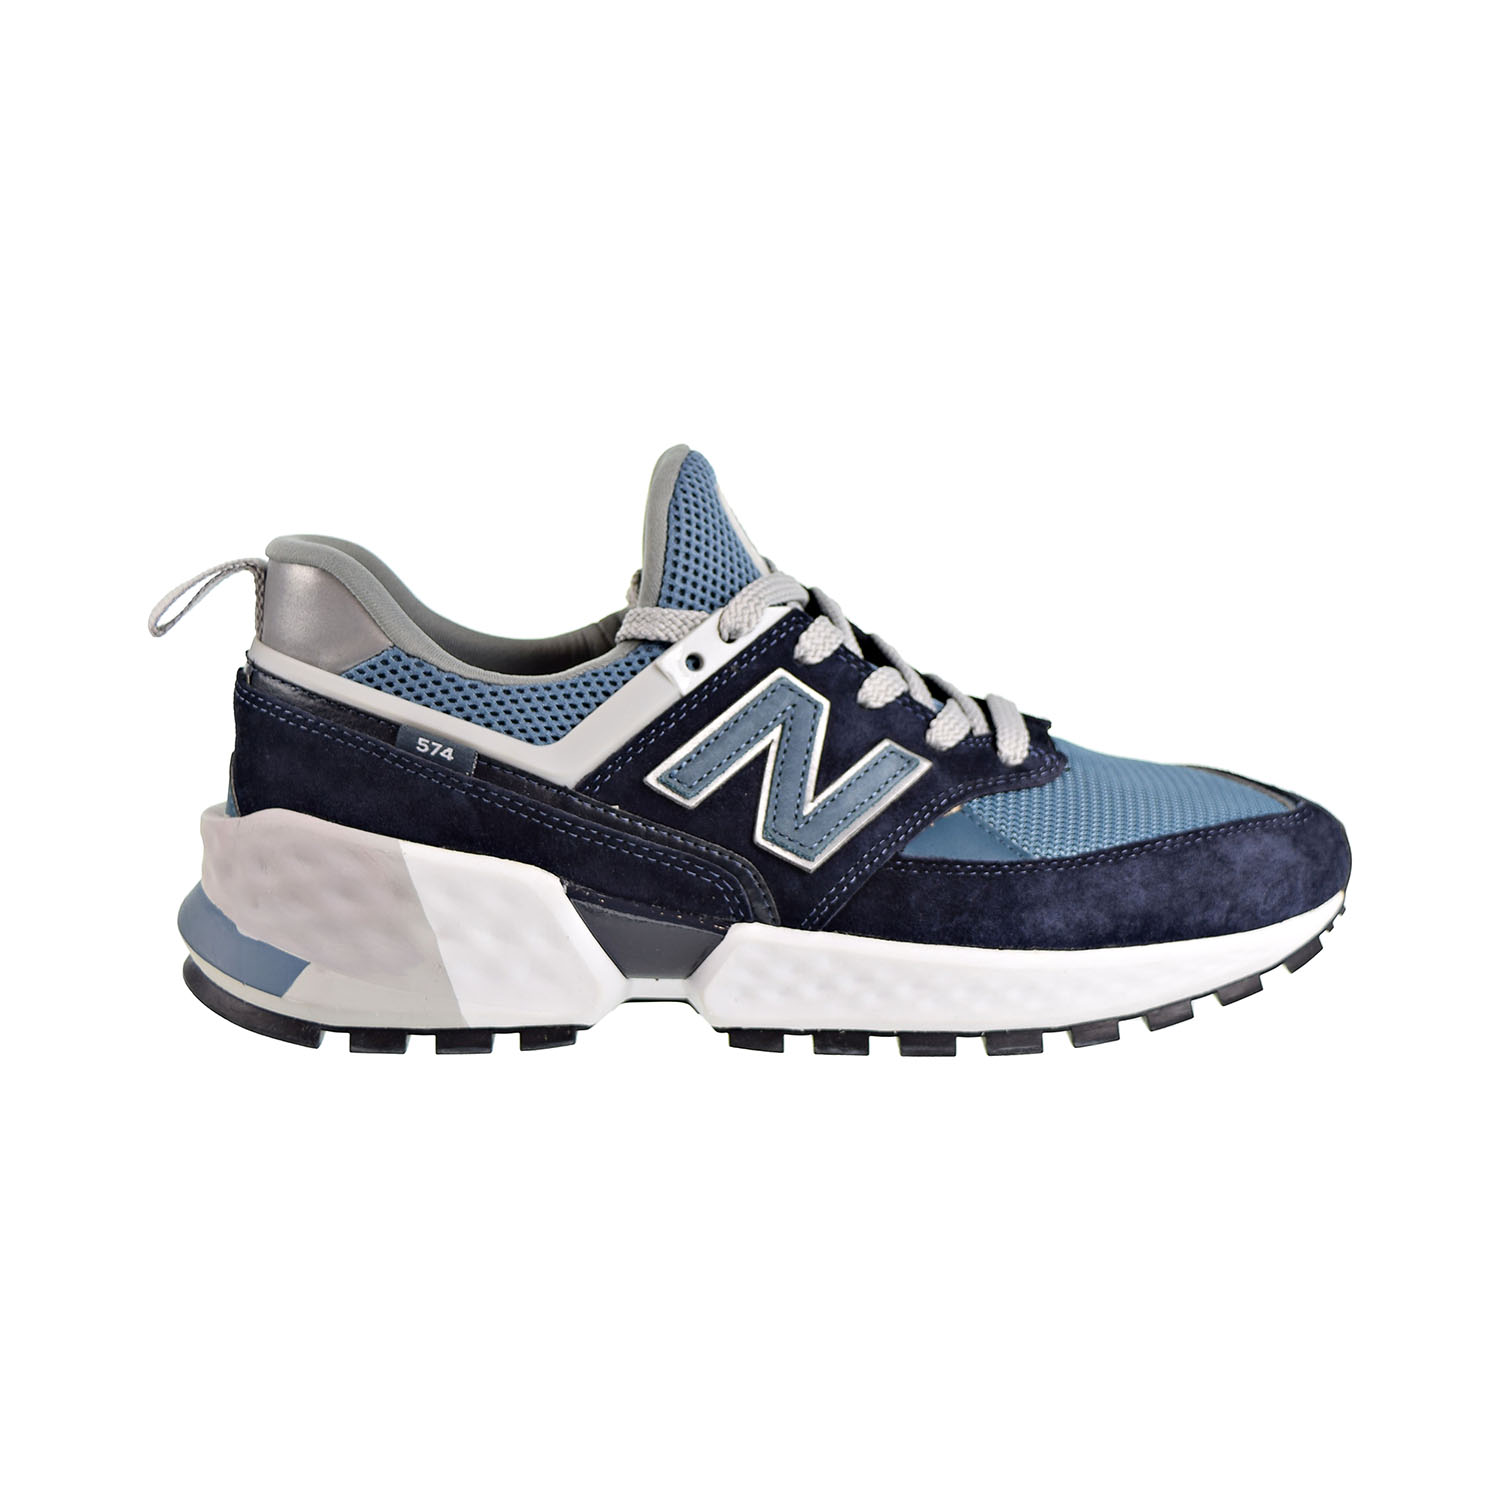 Details about New Balance 574 Sport Men's Shoes Dark Navy White MS574EDC